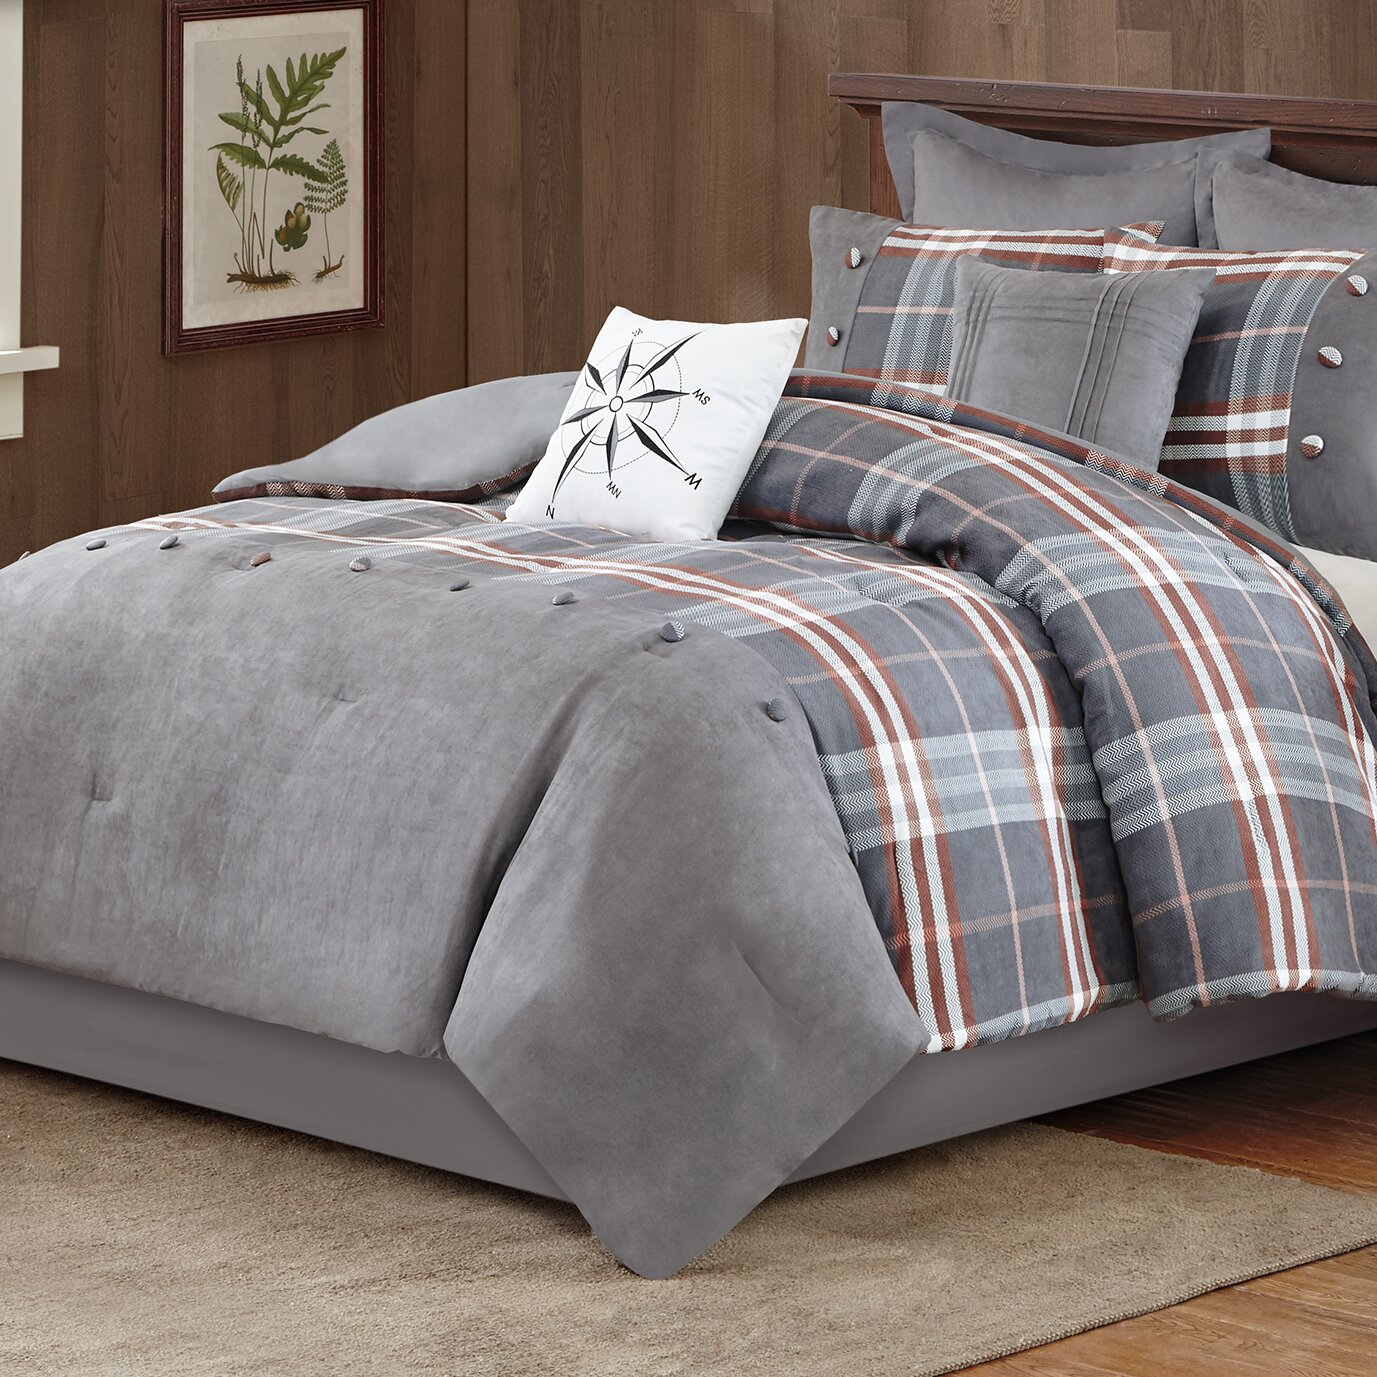 Woolrich Bedding Waterford Cathryn Bed Sets Woolrich